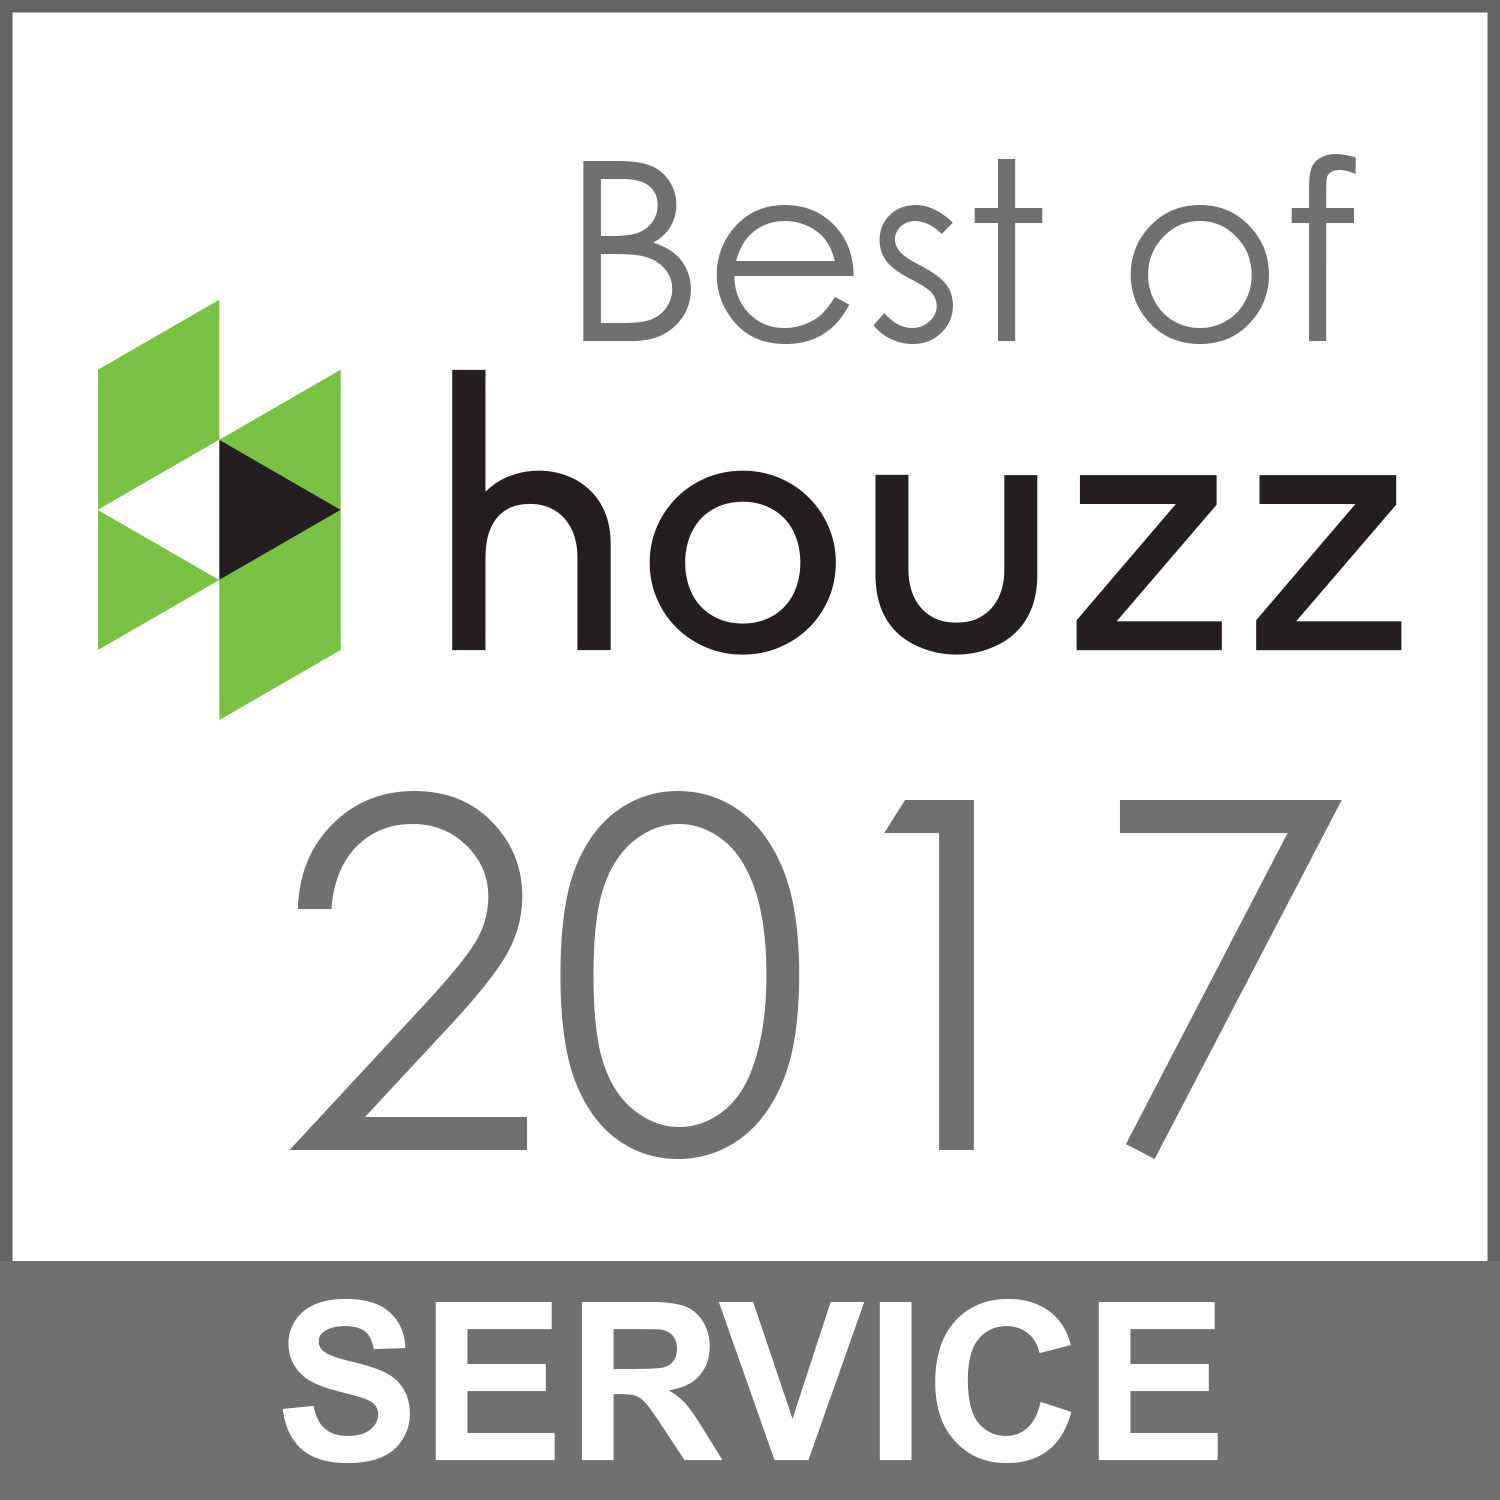 best of houzz 2017 badge